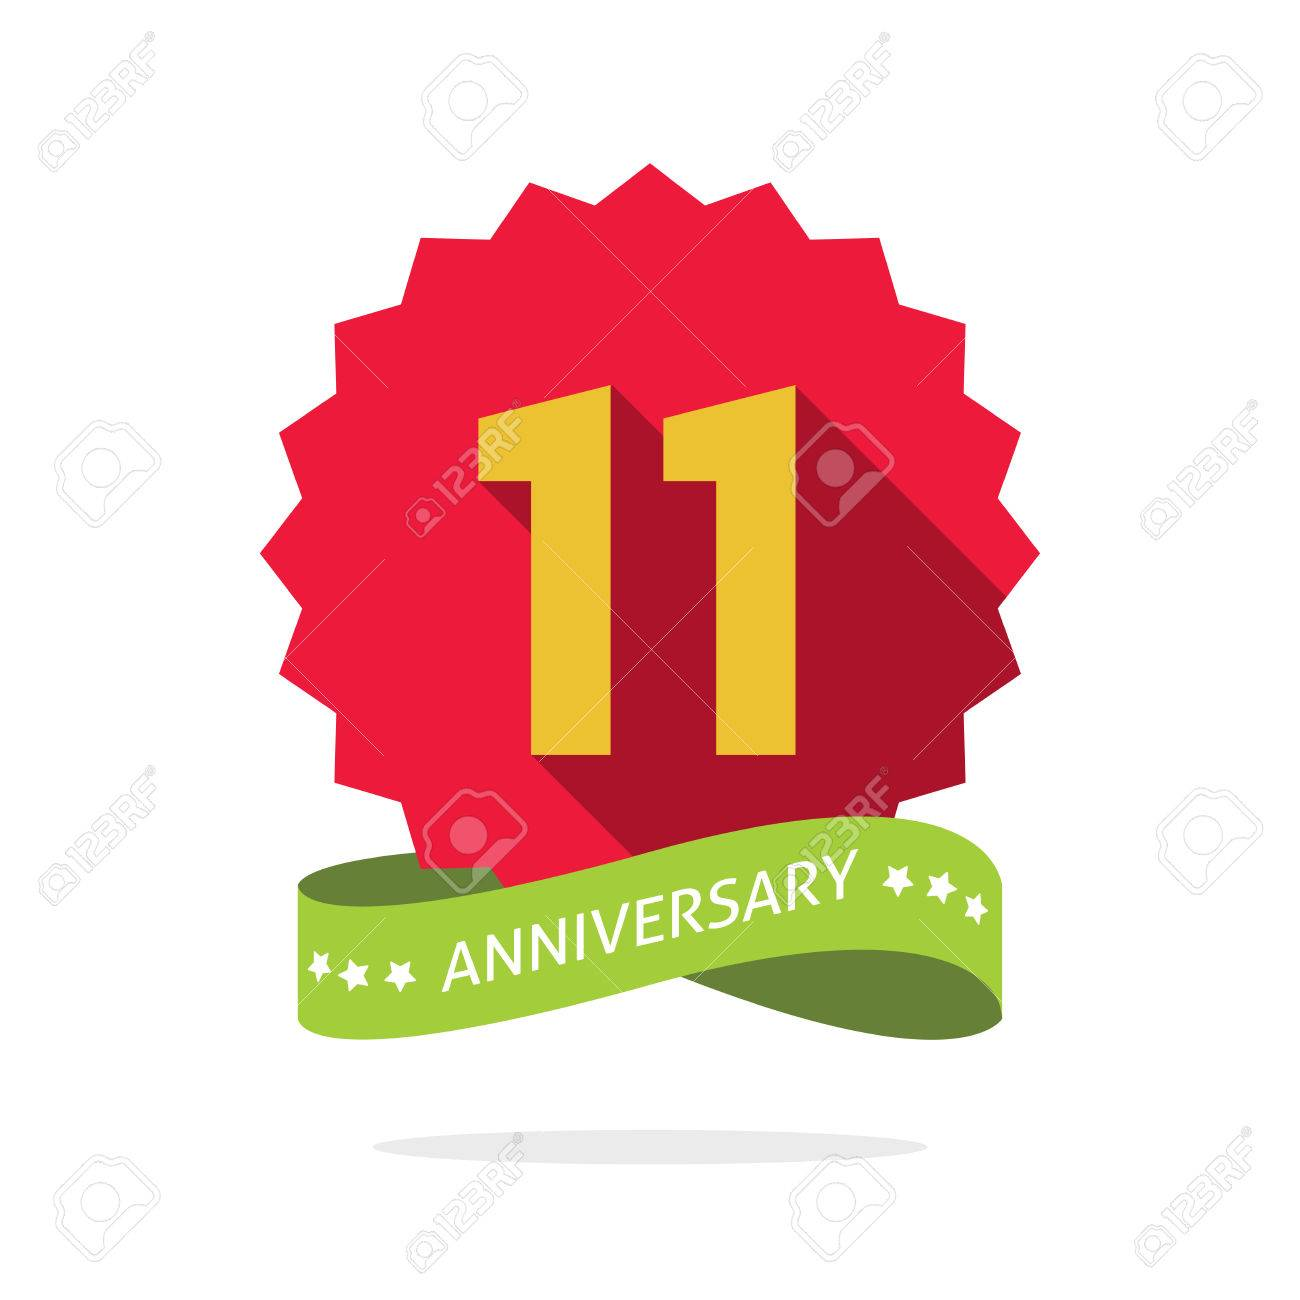 11th anniversary badge with shadow on red starburst and yellow